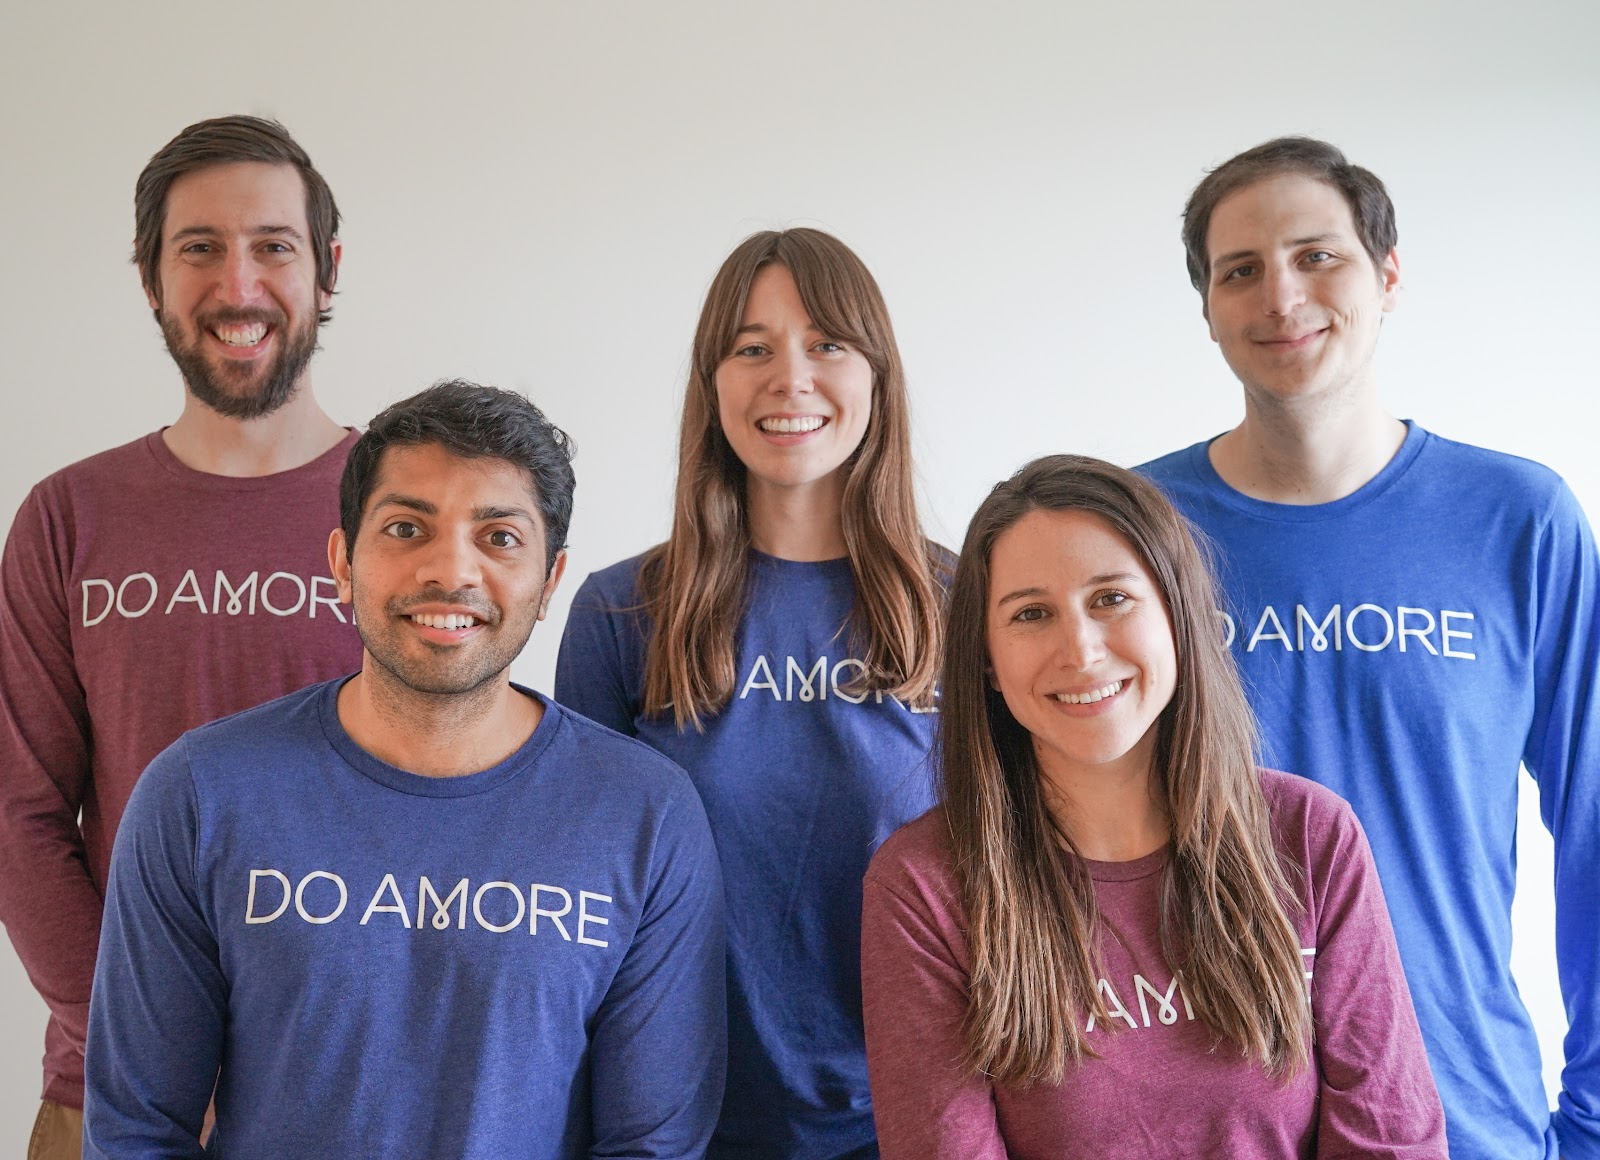 Do Amore's team gathers for a group photo